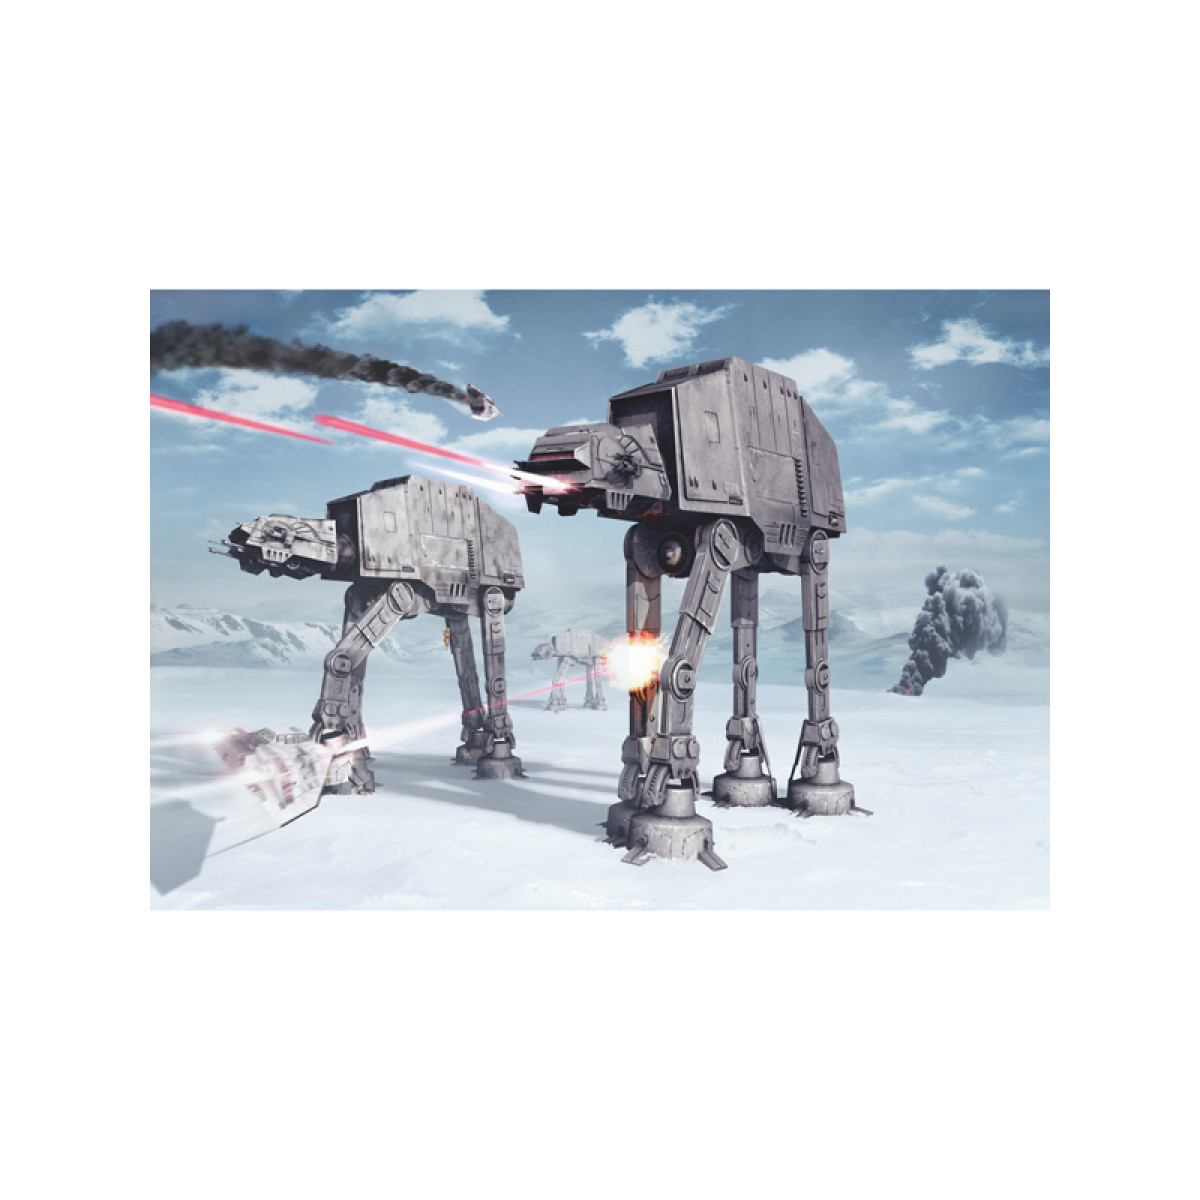 star wars battle of hoth wall mural x. Black Bedroom Furniture Sets. Home Design Ideas